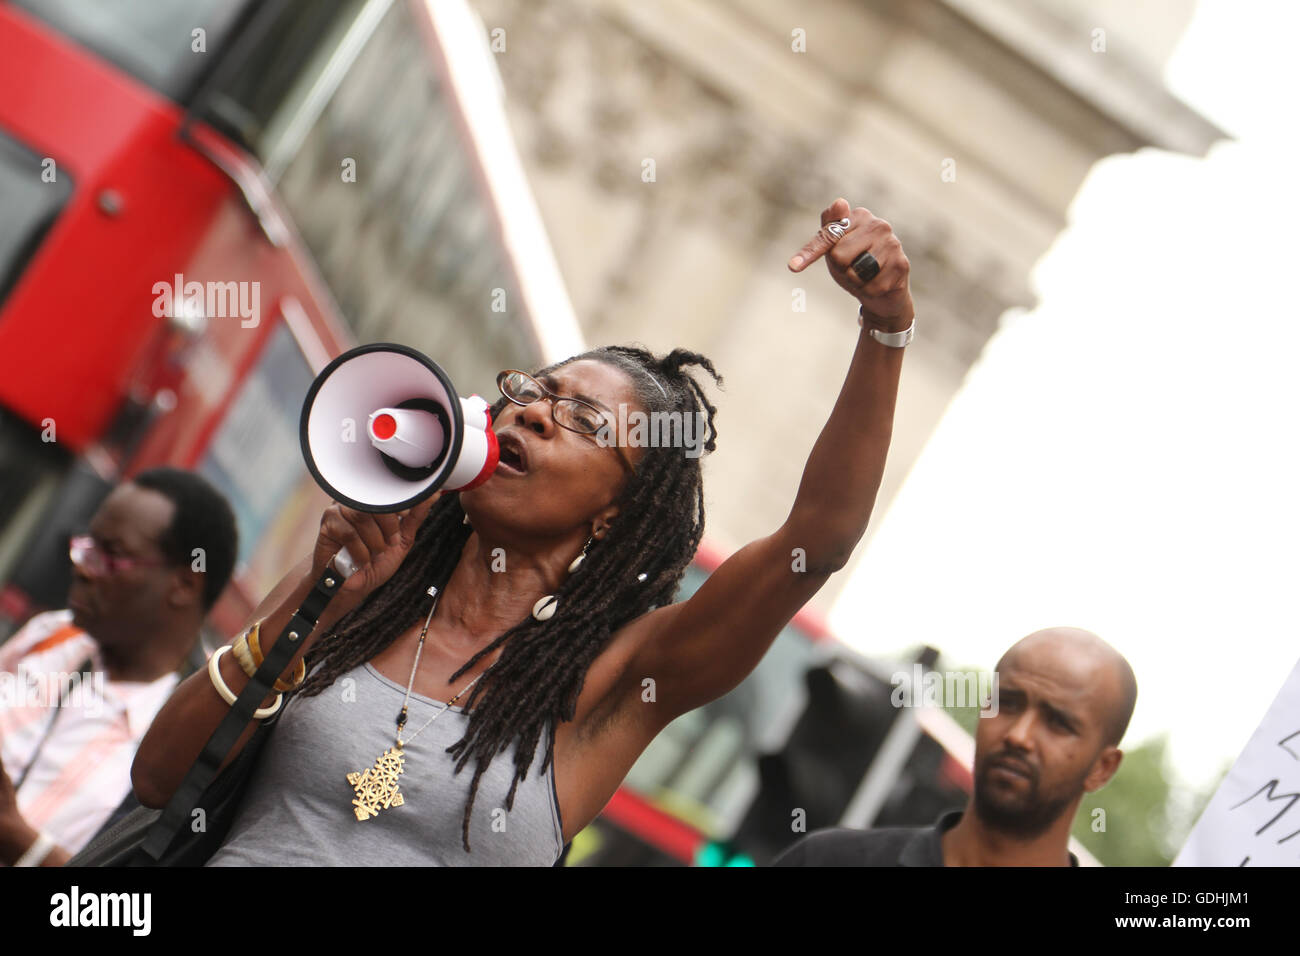 London, UK. 17th July 2016 : Marcia Rigg sister to Sean Riggs who died in police custody speaks through a mega phone - Stock Image